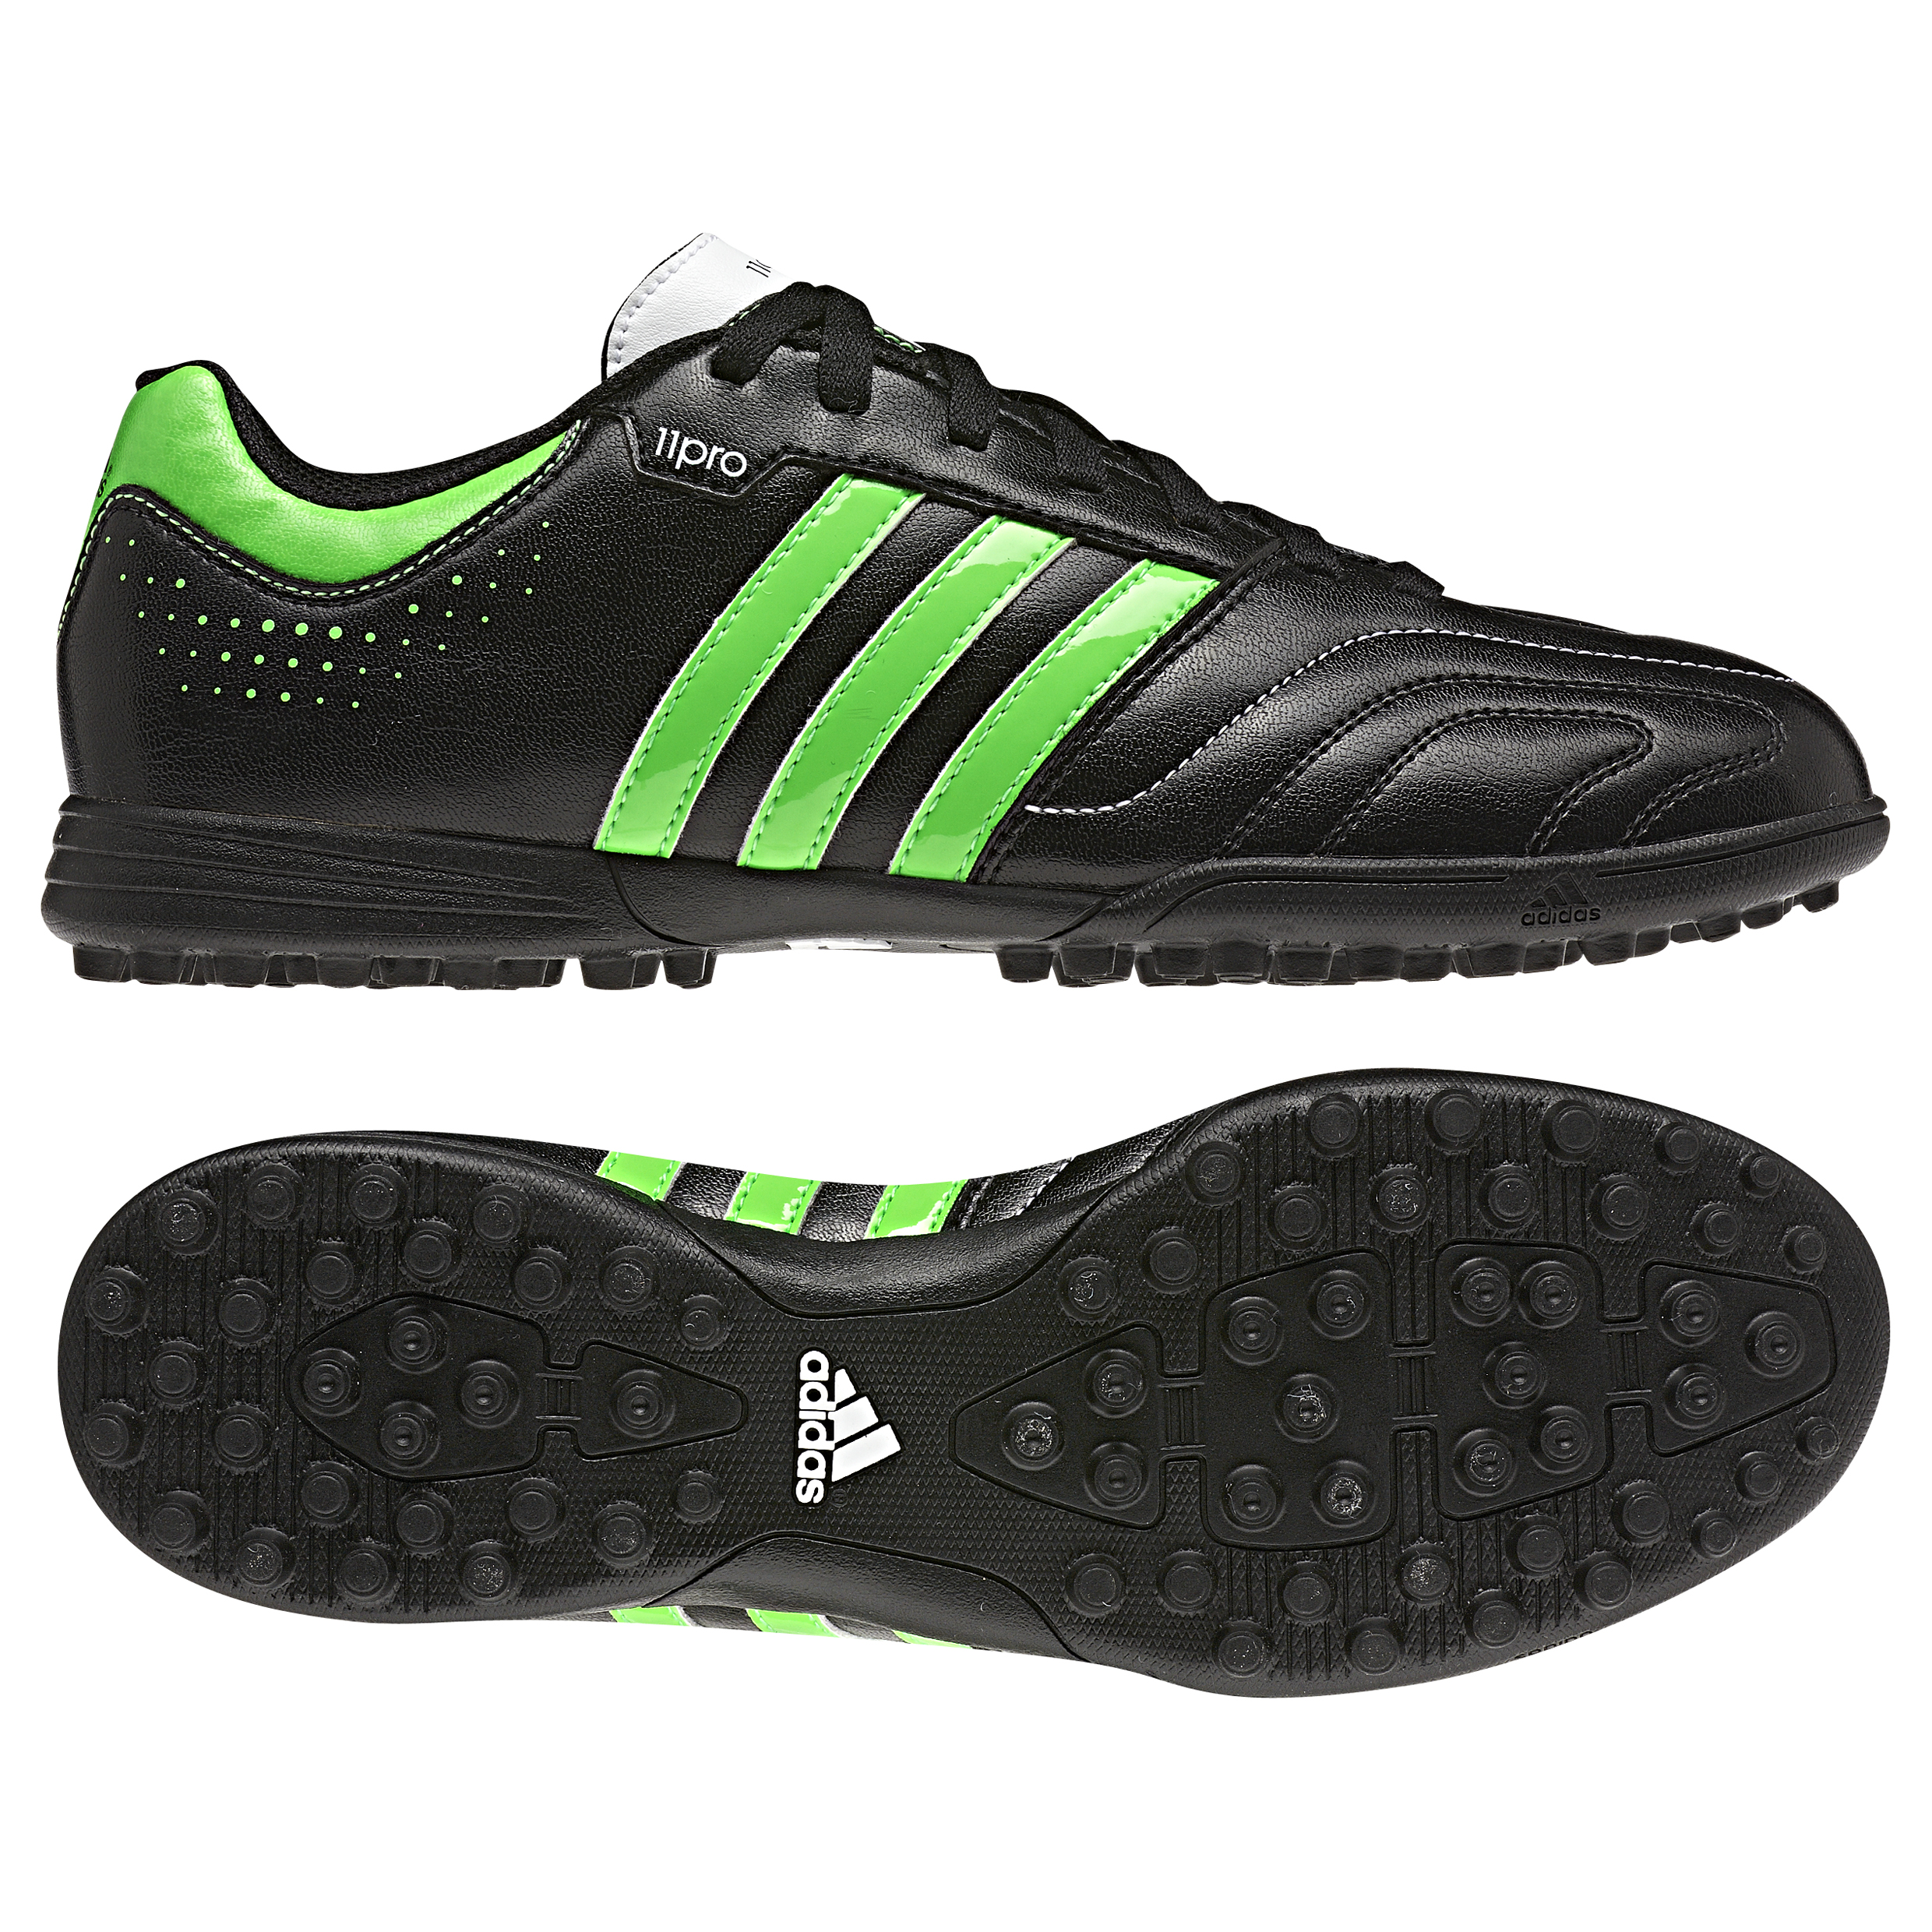 AdiPure 11Questra TRX Astroturf Black/Green Zest/White